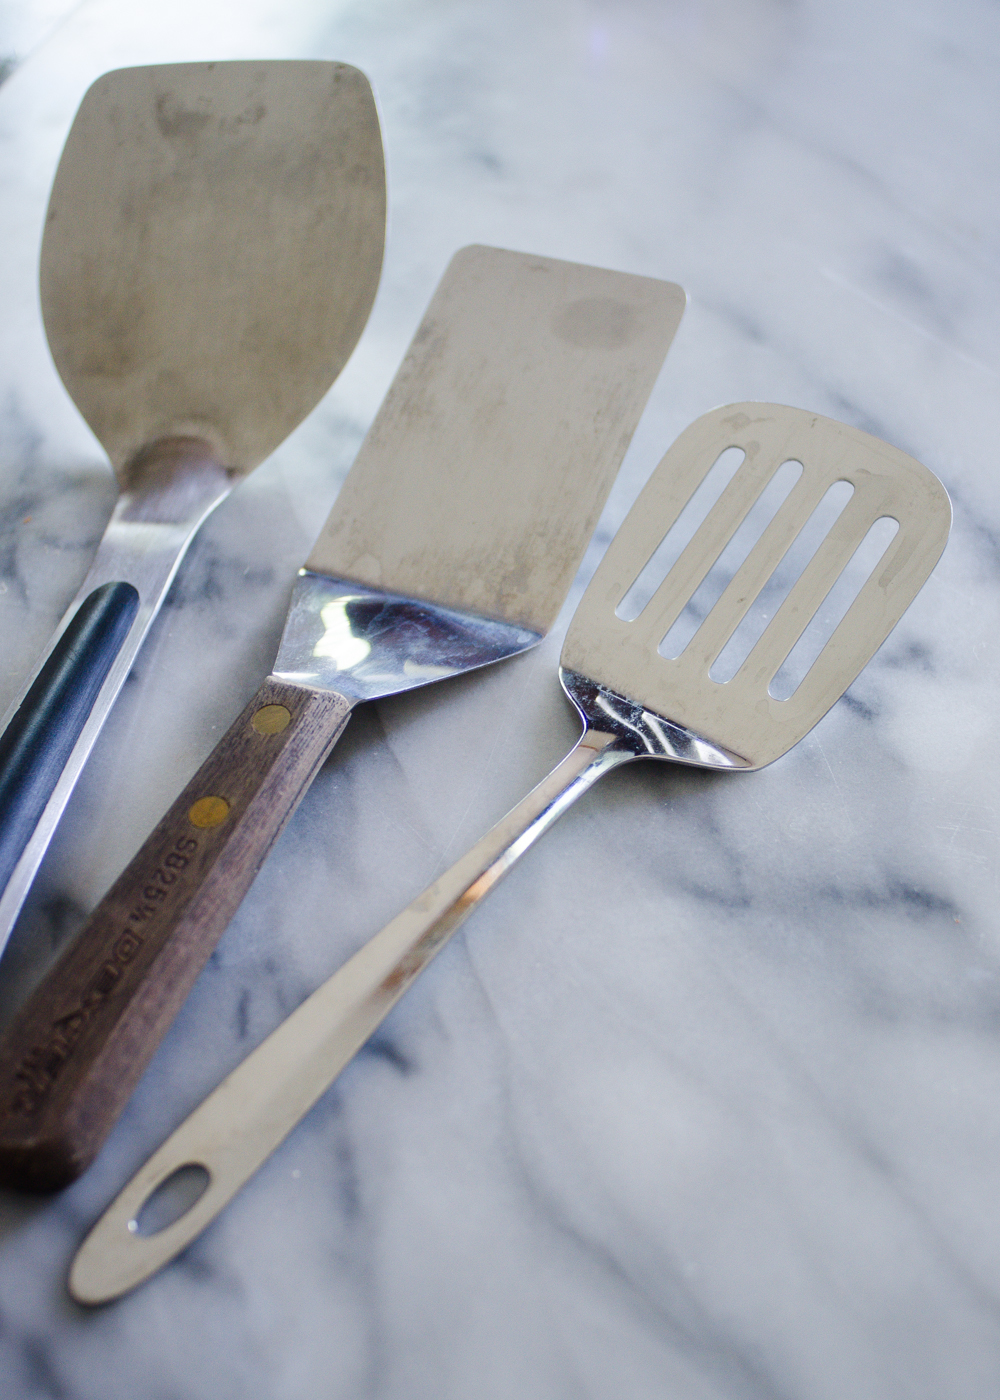 3 Kitchen Tools You Can Never Have Too Many Of